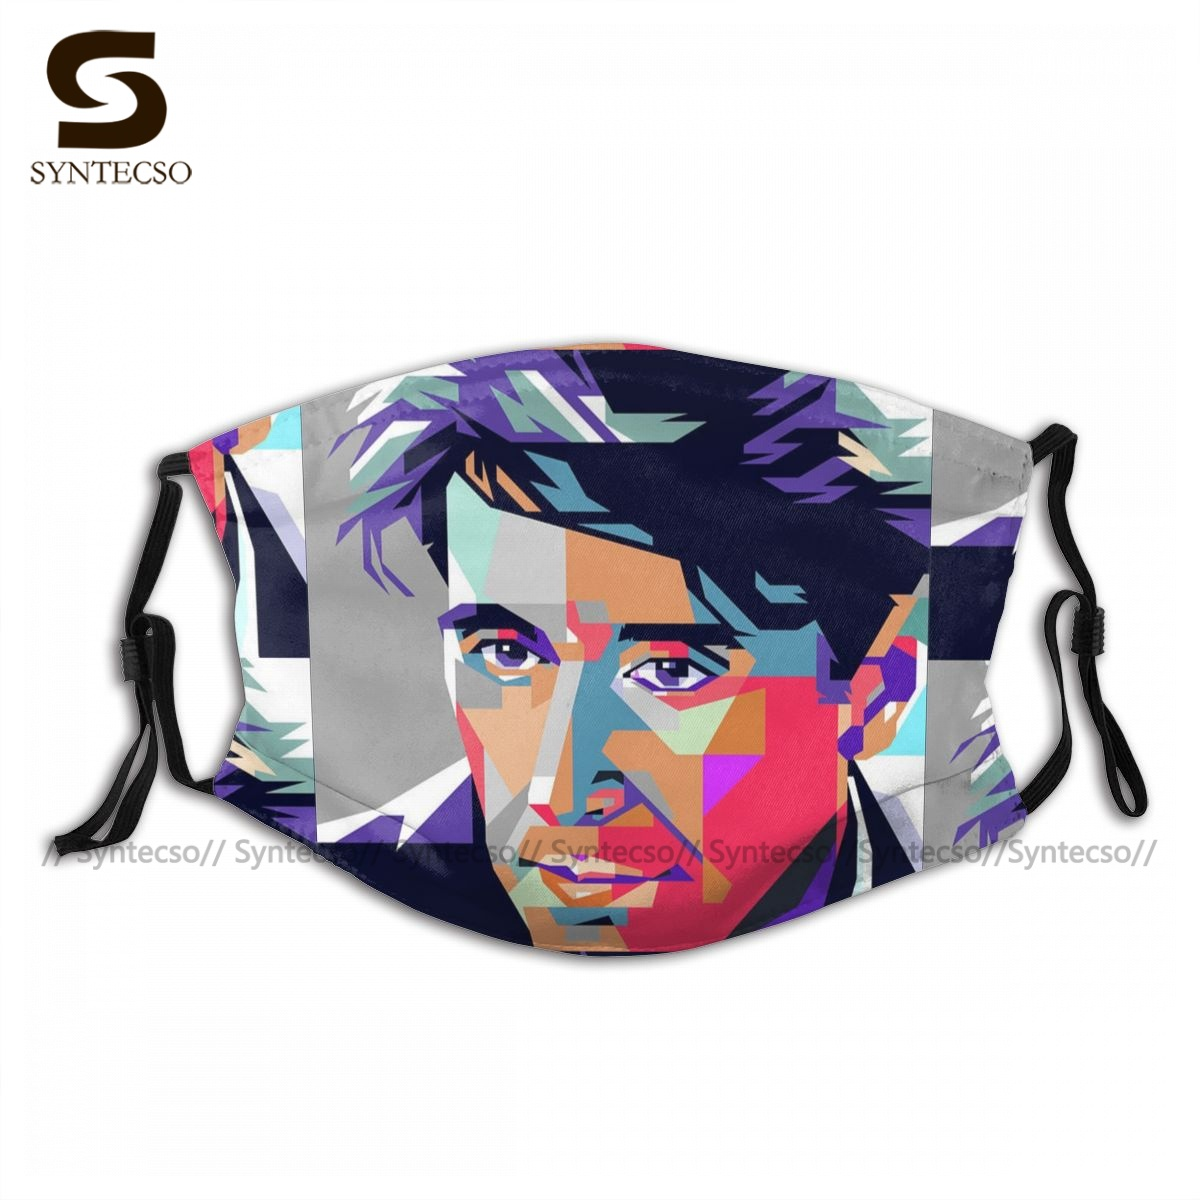 Swag Dust Protection Al Pacino Five Face Mask Fun Adult Polyester Bike Facial Mouth Mask With Filters